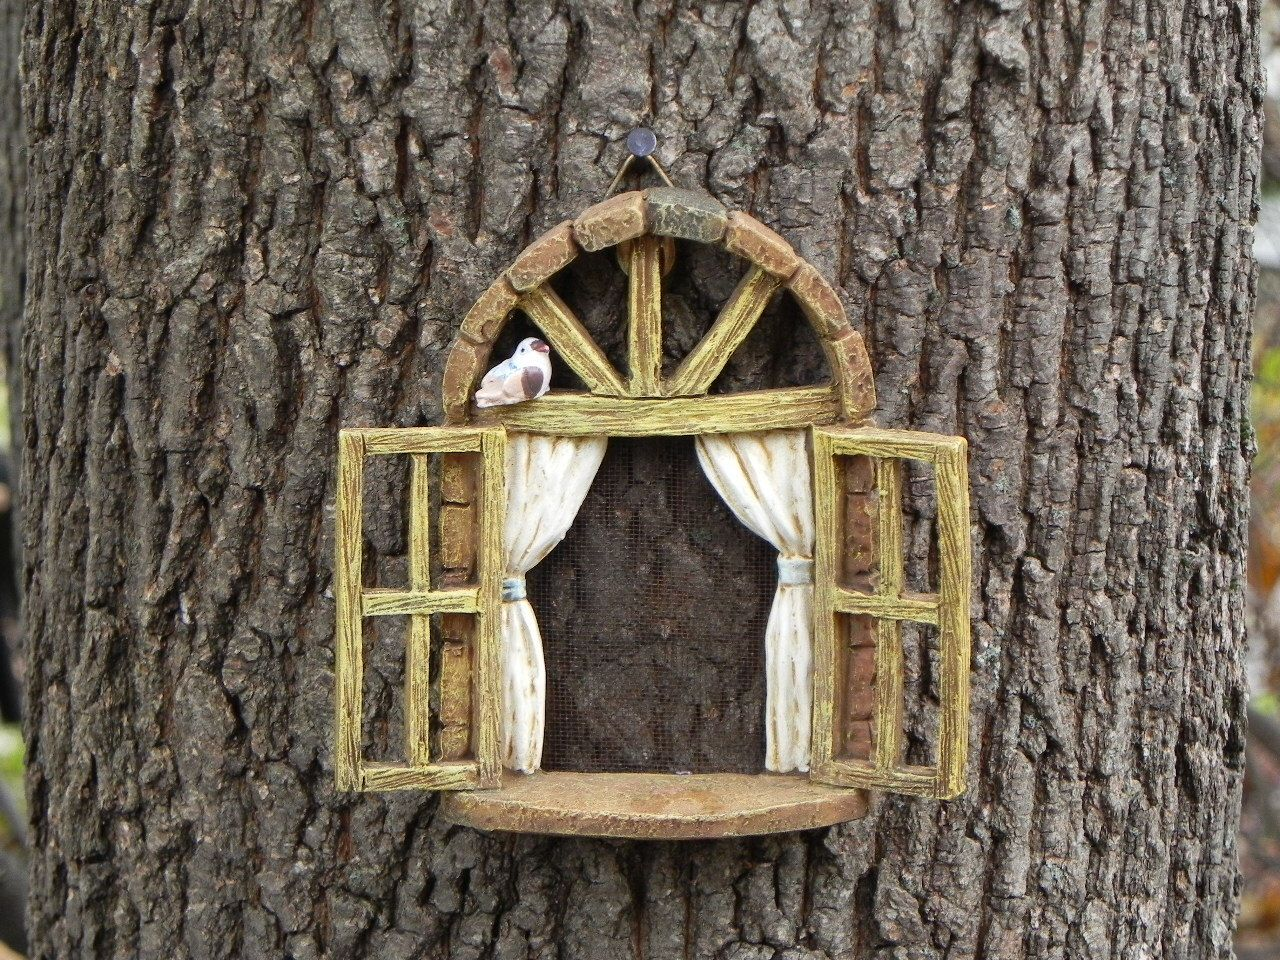 Pin by Senya Gwynn on Fairy Gardens | Fairy garden ...